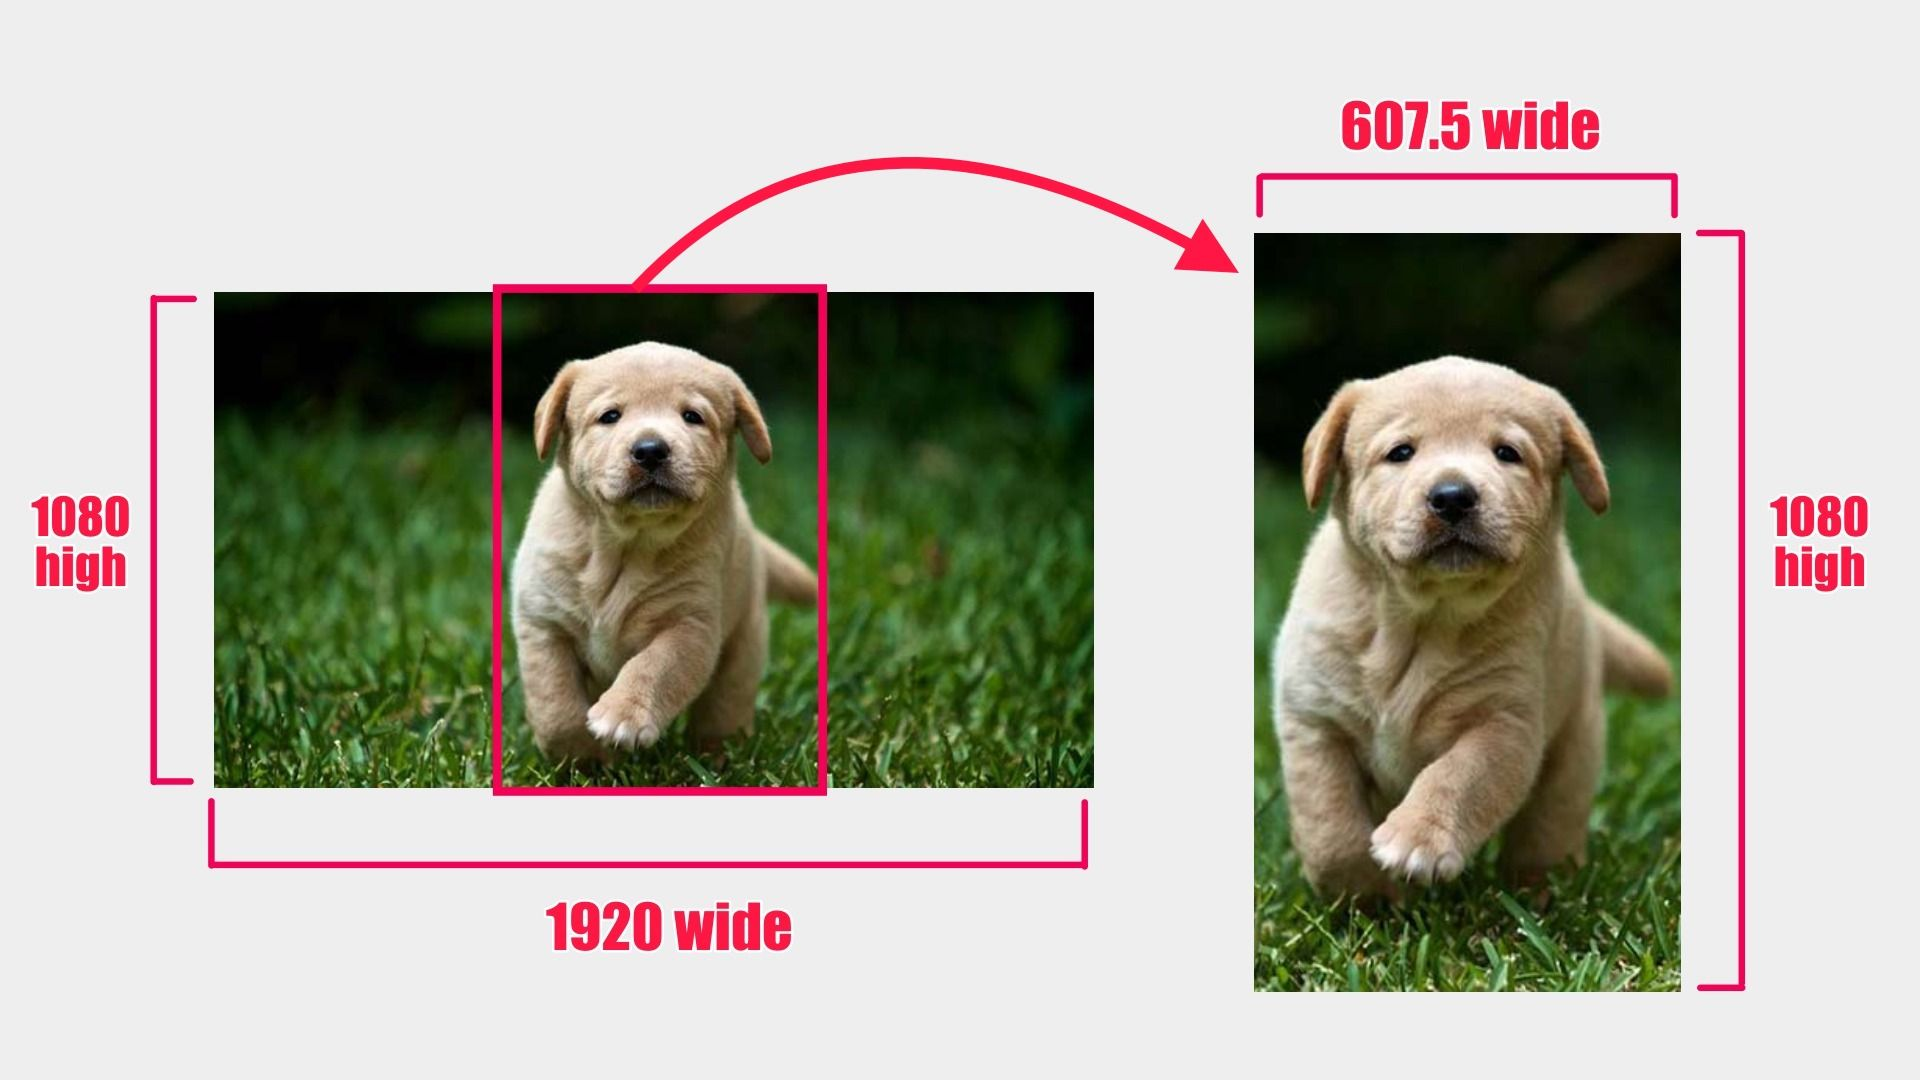 A graphic to demonstrate what resizing and cropping looks like. On the left, a widescreen image of a puppy is shown, with the dimensions 1080 pixels high and 1920 pixels wide. A vertical red rectangle is overlaid to show how the user might crop part of the photo out. On the right side, a vertical image of the puppy is shown, in a 9:16 crop of the original left image, with the dimensions 607.5 pixels wide and 1080 pixels high.